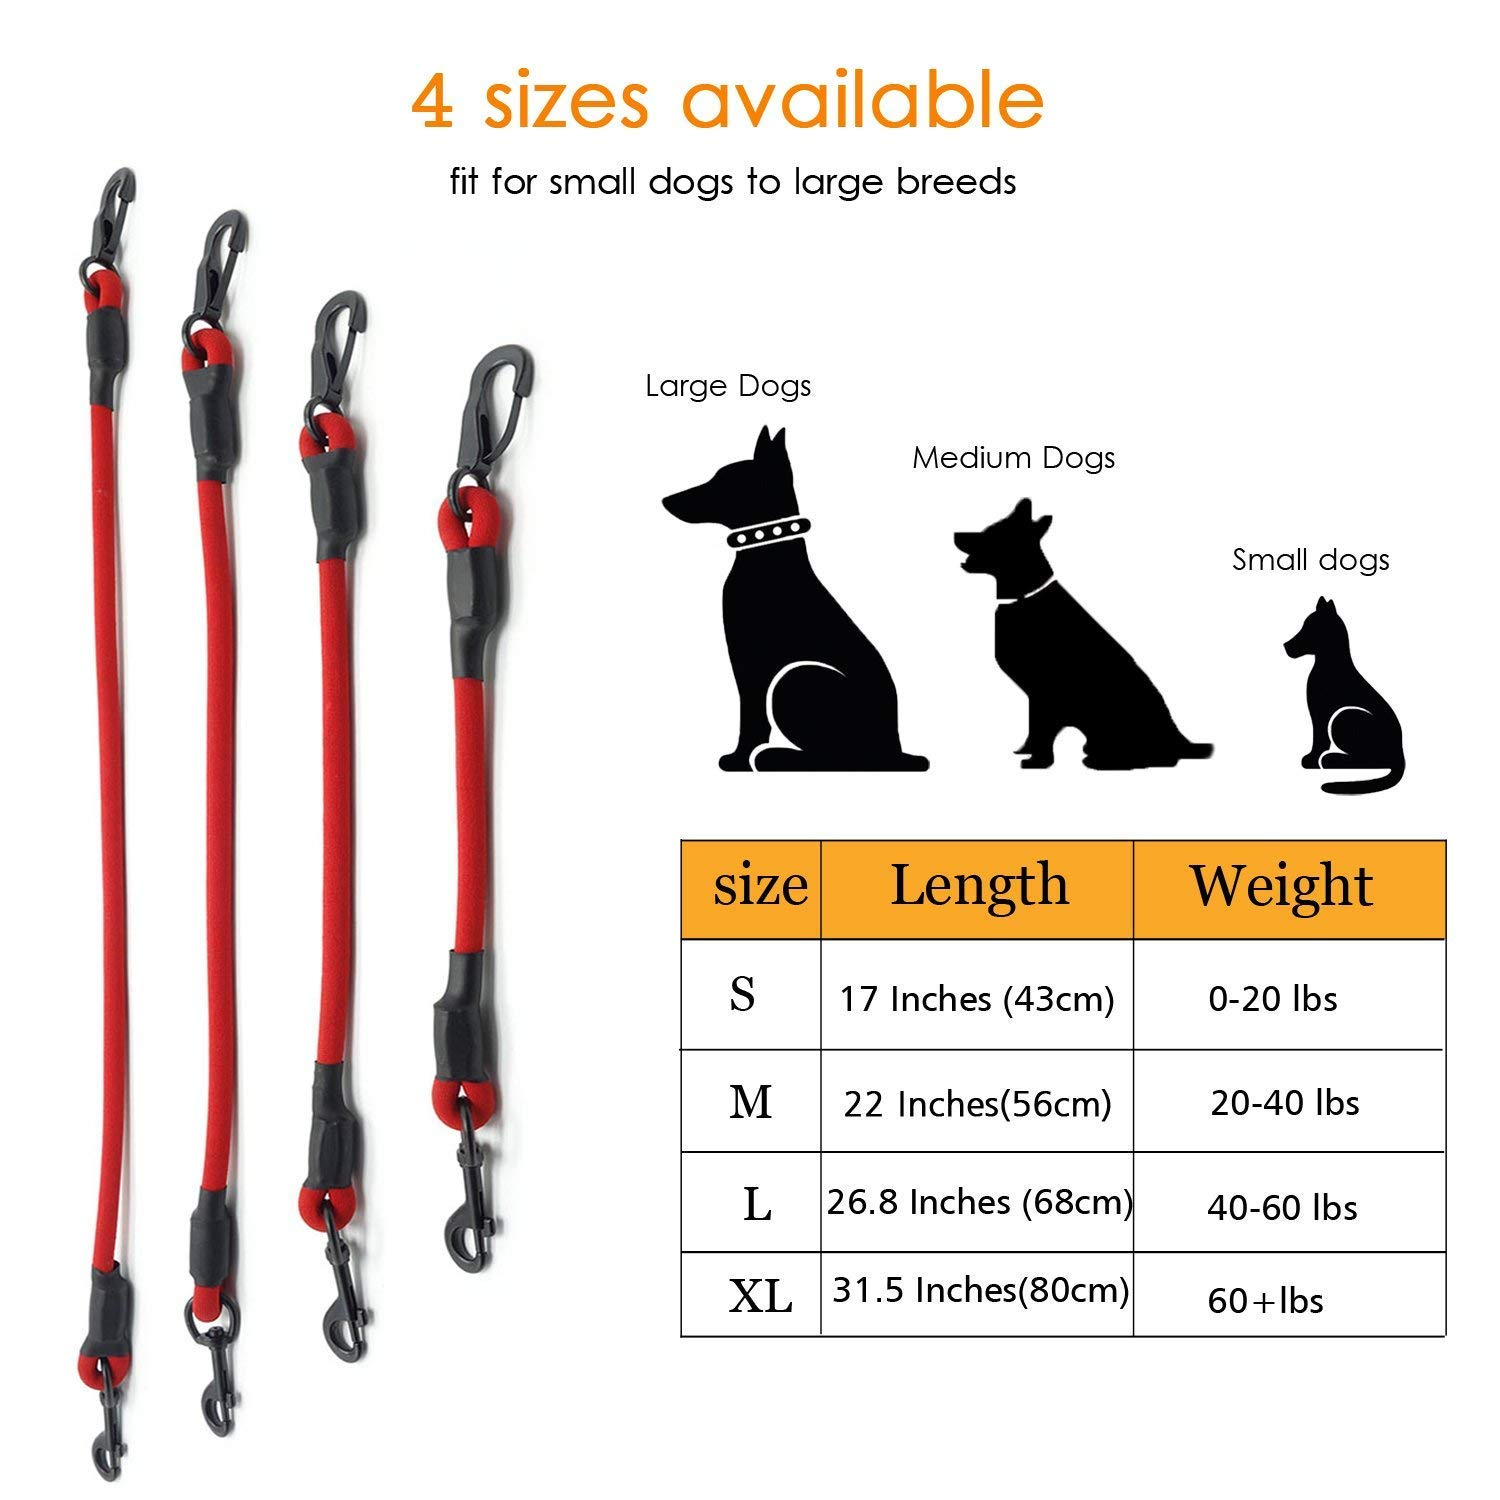 Black L AMZNOVA Dog Seat Belt Explosion-proof Rushed Dog Car Harness Restraint Pet Safety Latch Seatbelt Durable for Cat Puppy Small Large Dogs Travel Carring